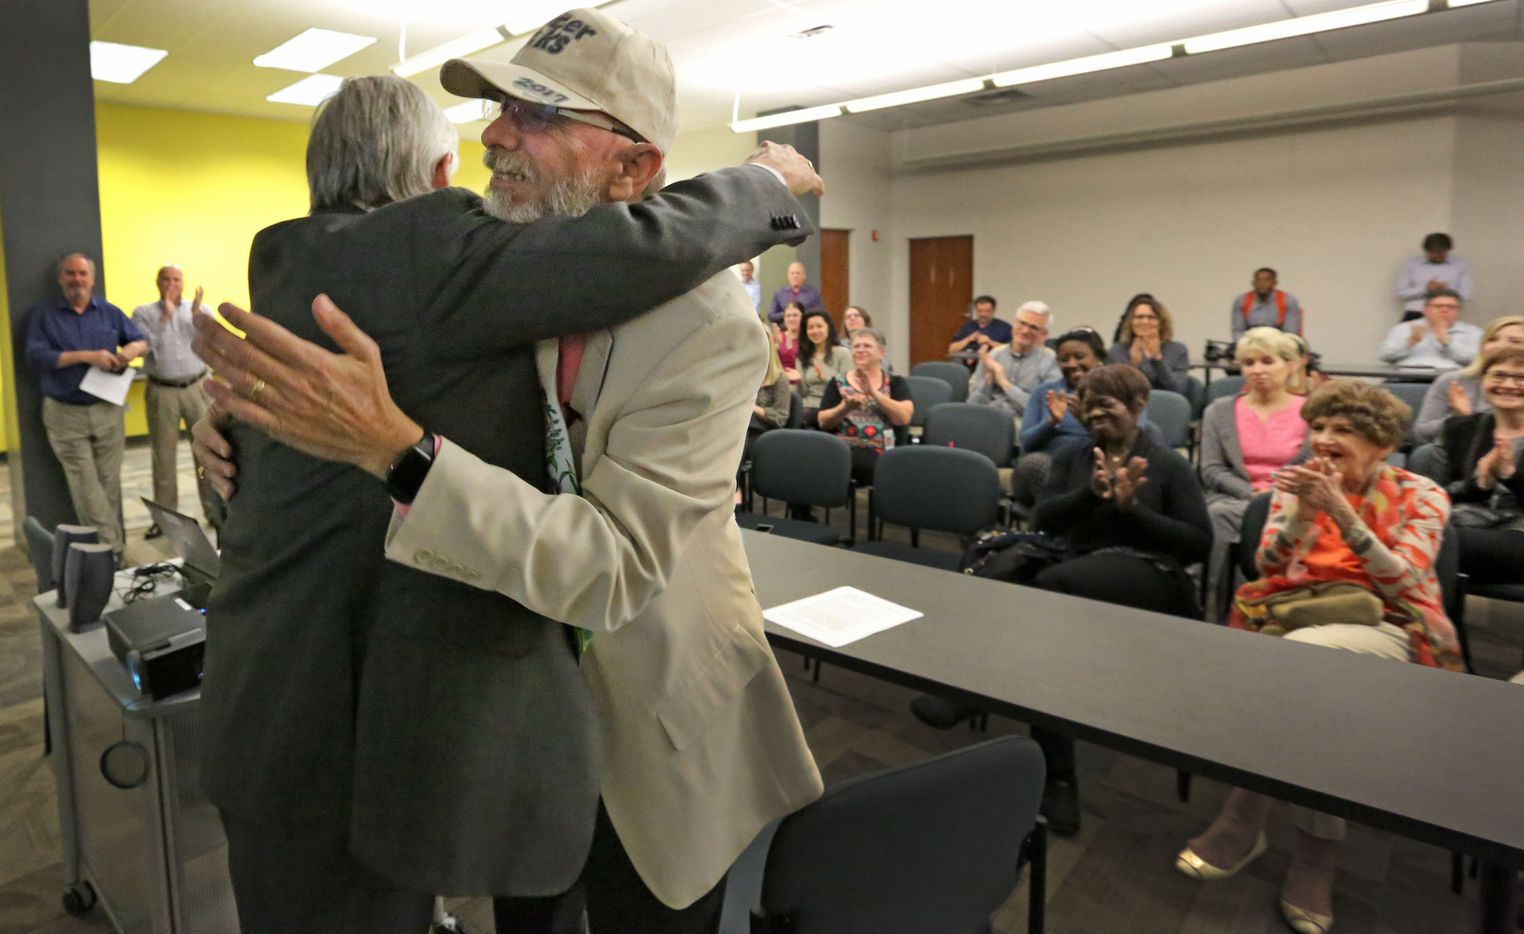 Chairman, president and CEO of A. H. Belo Corporation Jim Moroney, left, hugs Jeffrey Weiss at the reporter's career tribute party at The Dallas Morning News on Wednesday, March 1, 2017. (Louis DeLuca/The Dallas Morning News)